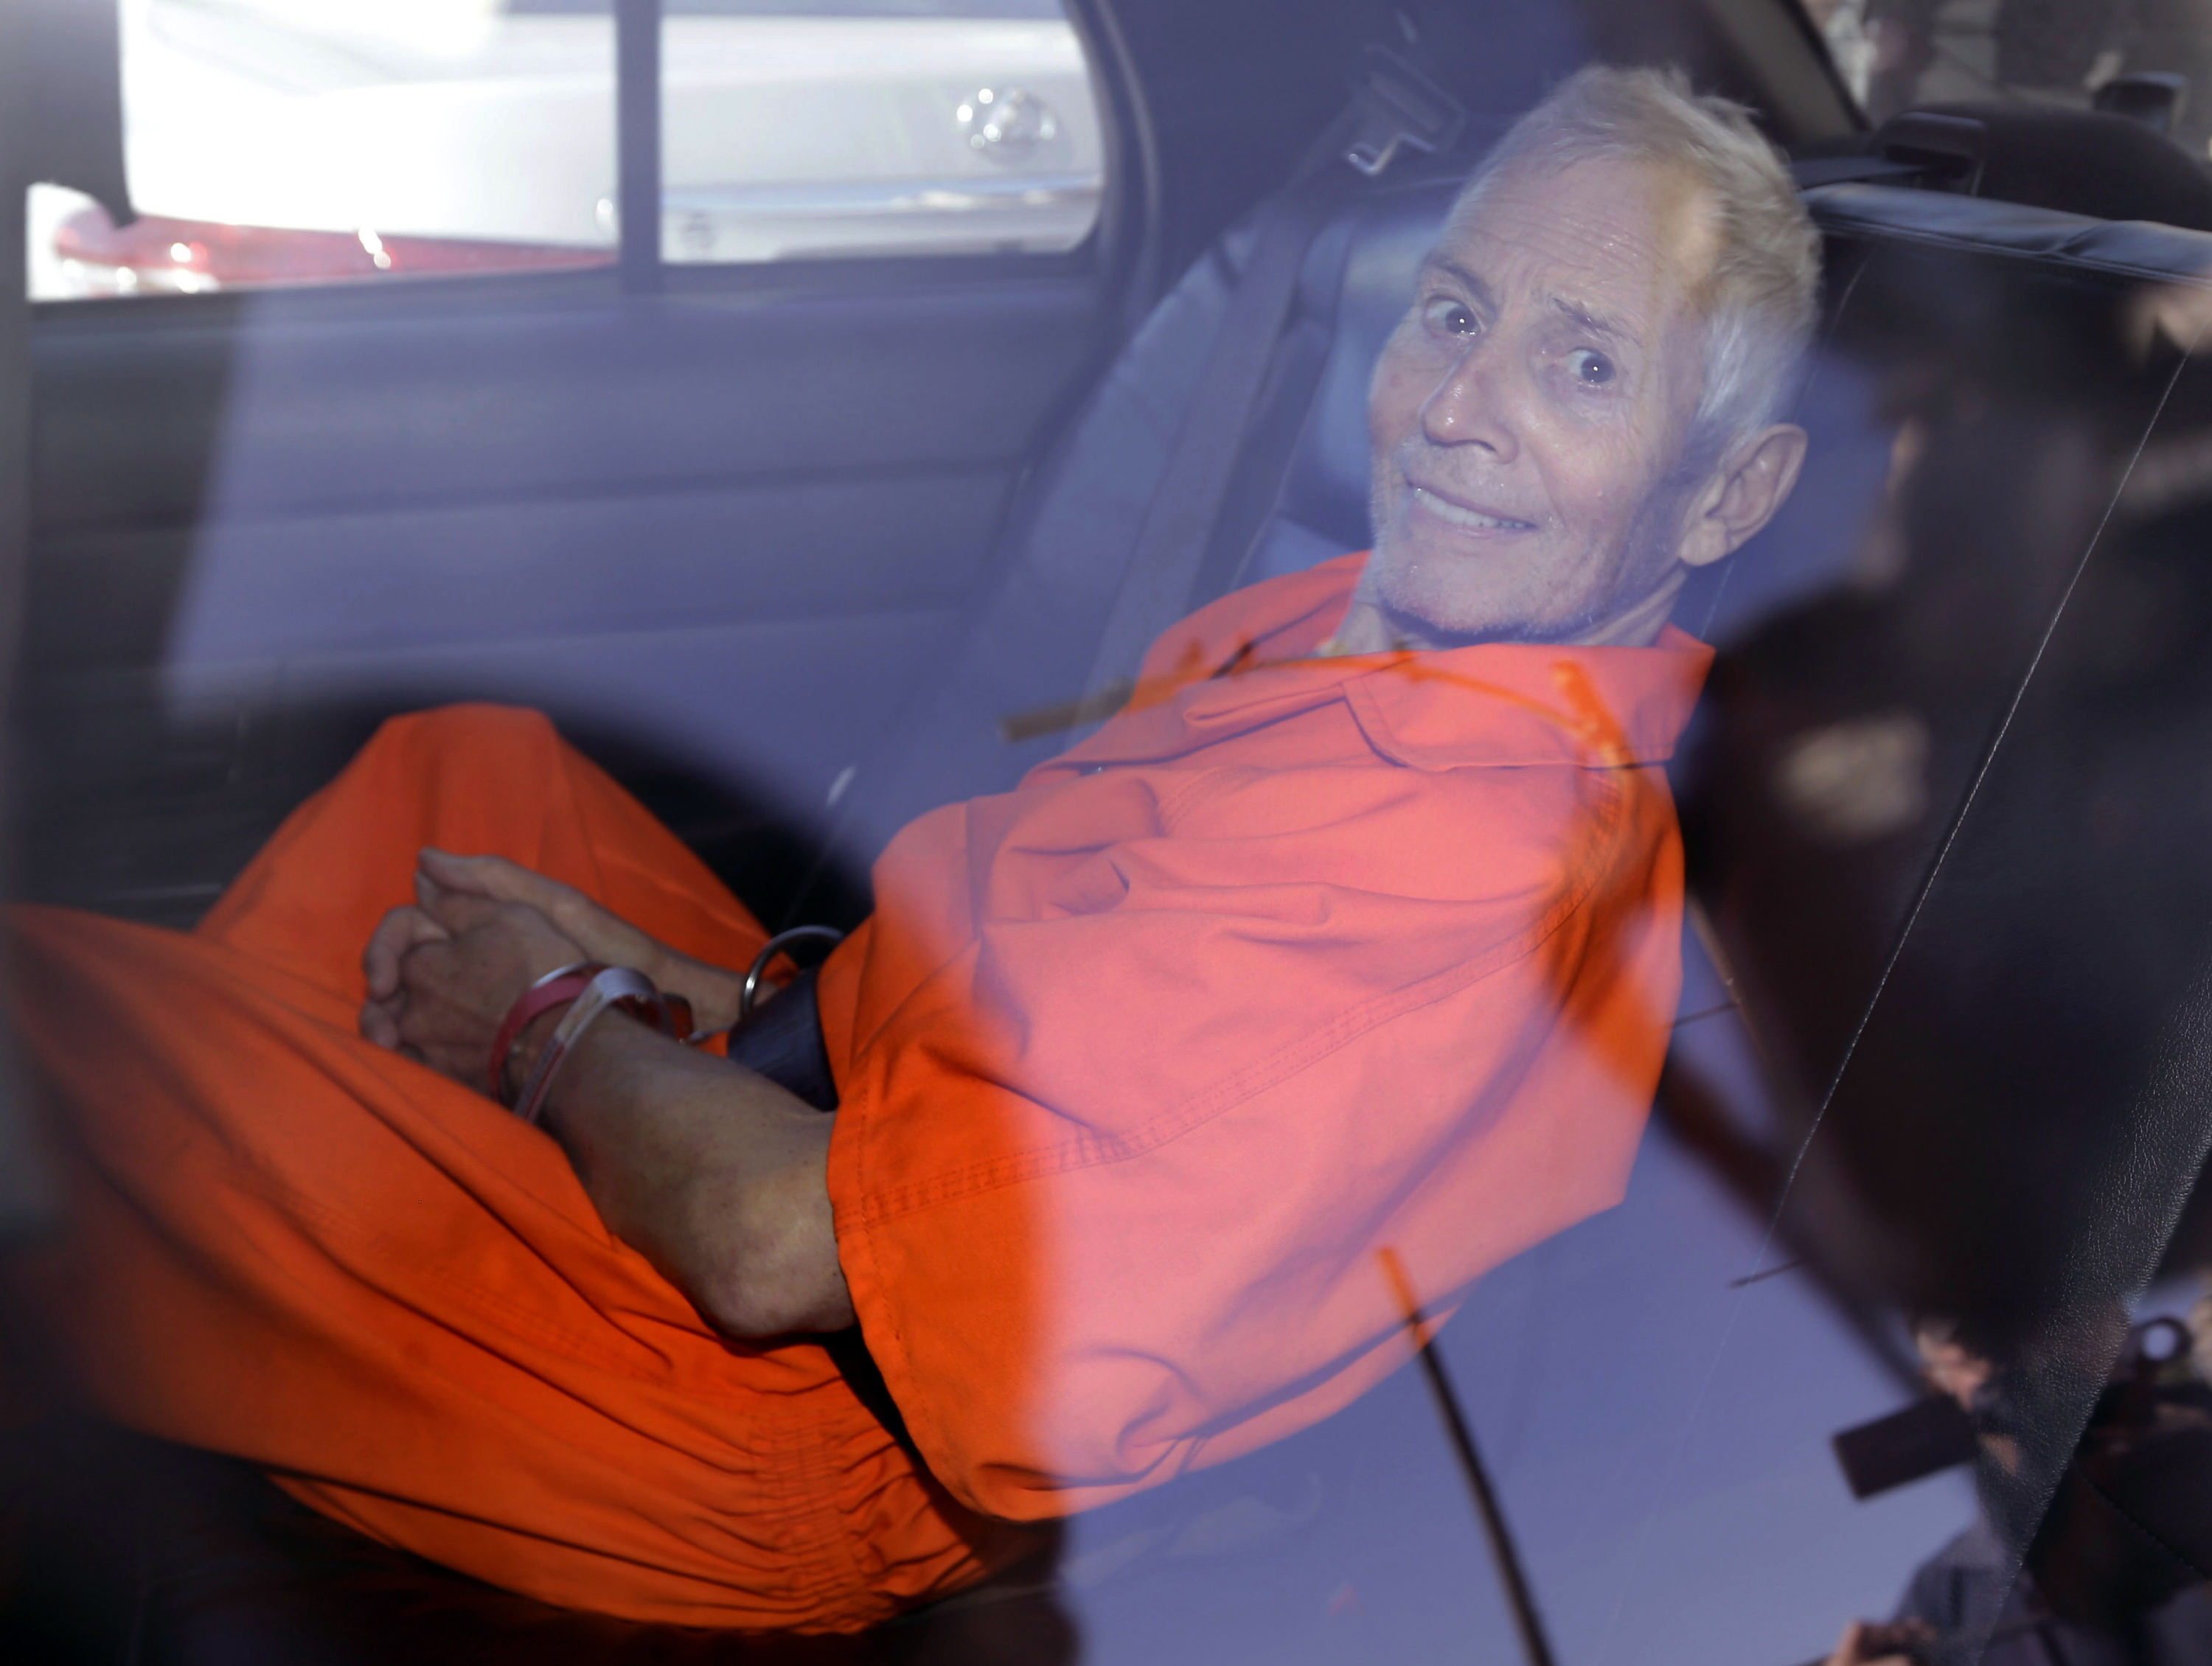 Real Estate Heir Robert Durst Sentenced to 7 Years After Plea Agreement